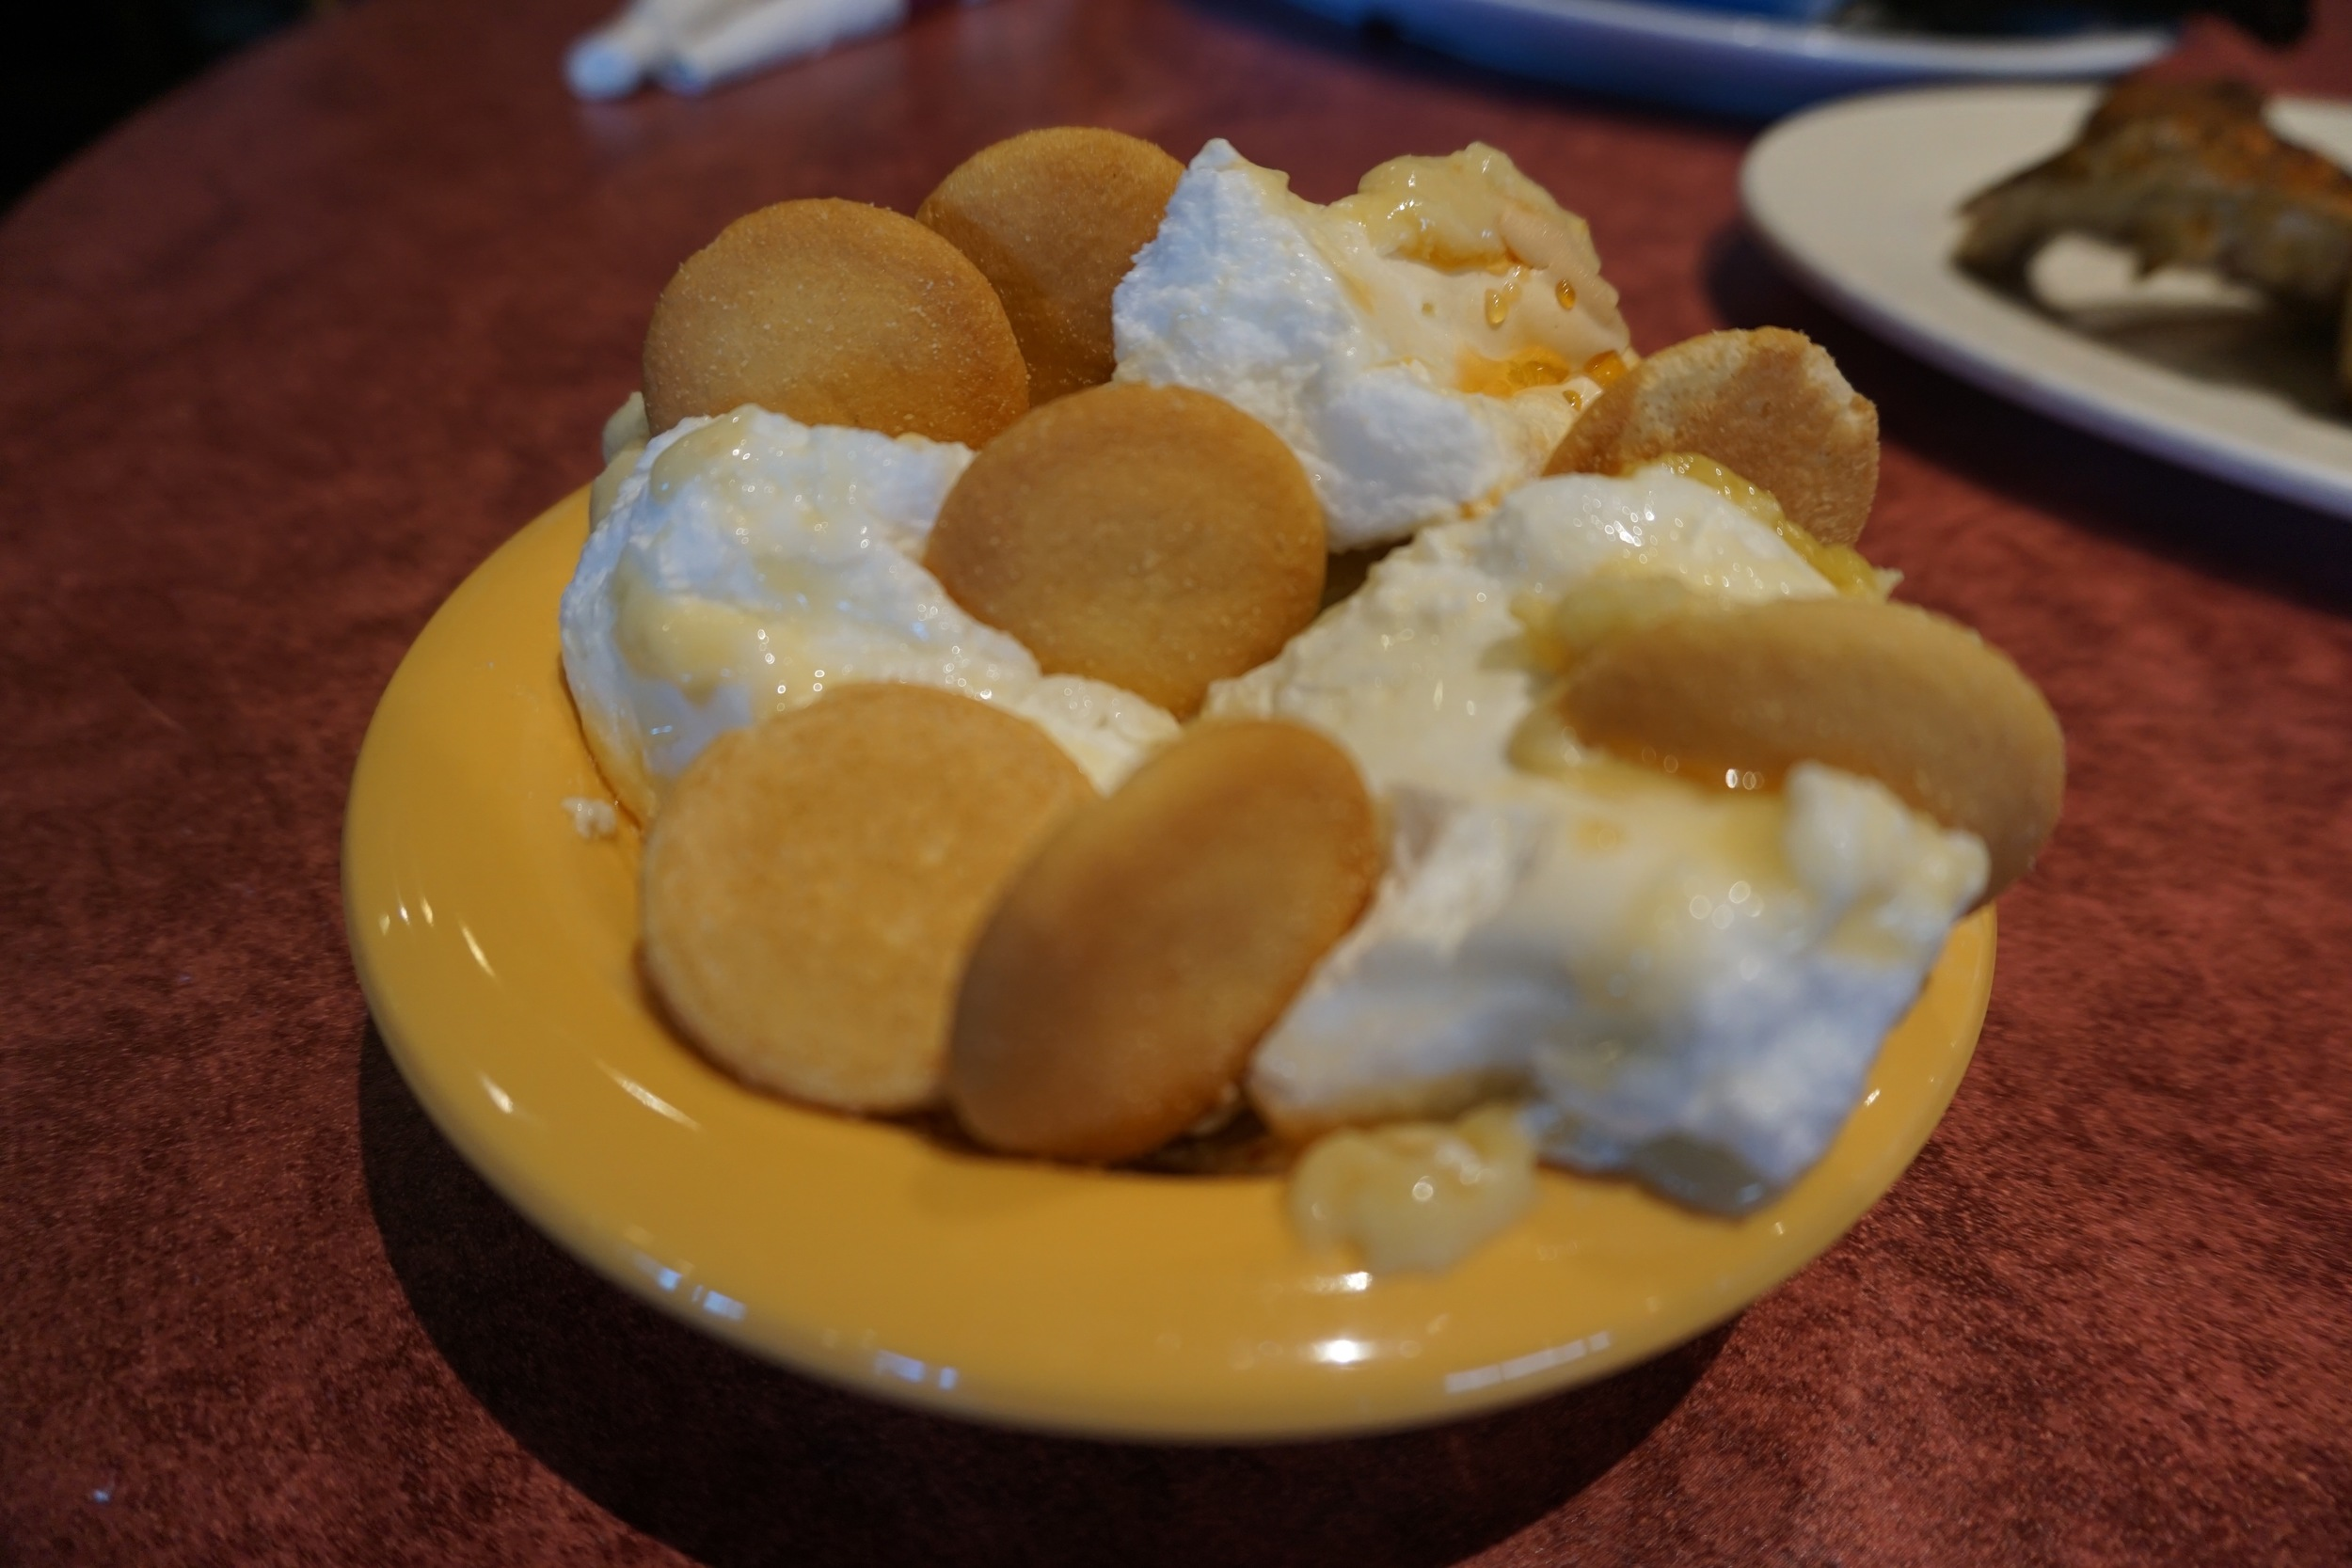 Millie's Banana Pudding!! Homemade Daily from scratch!